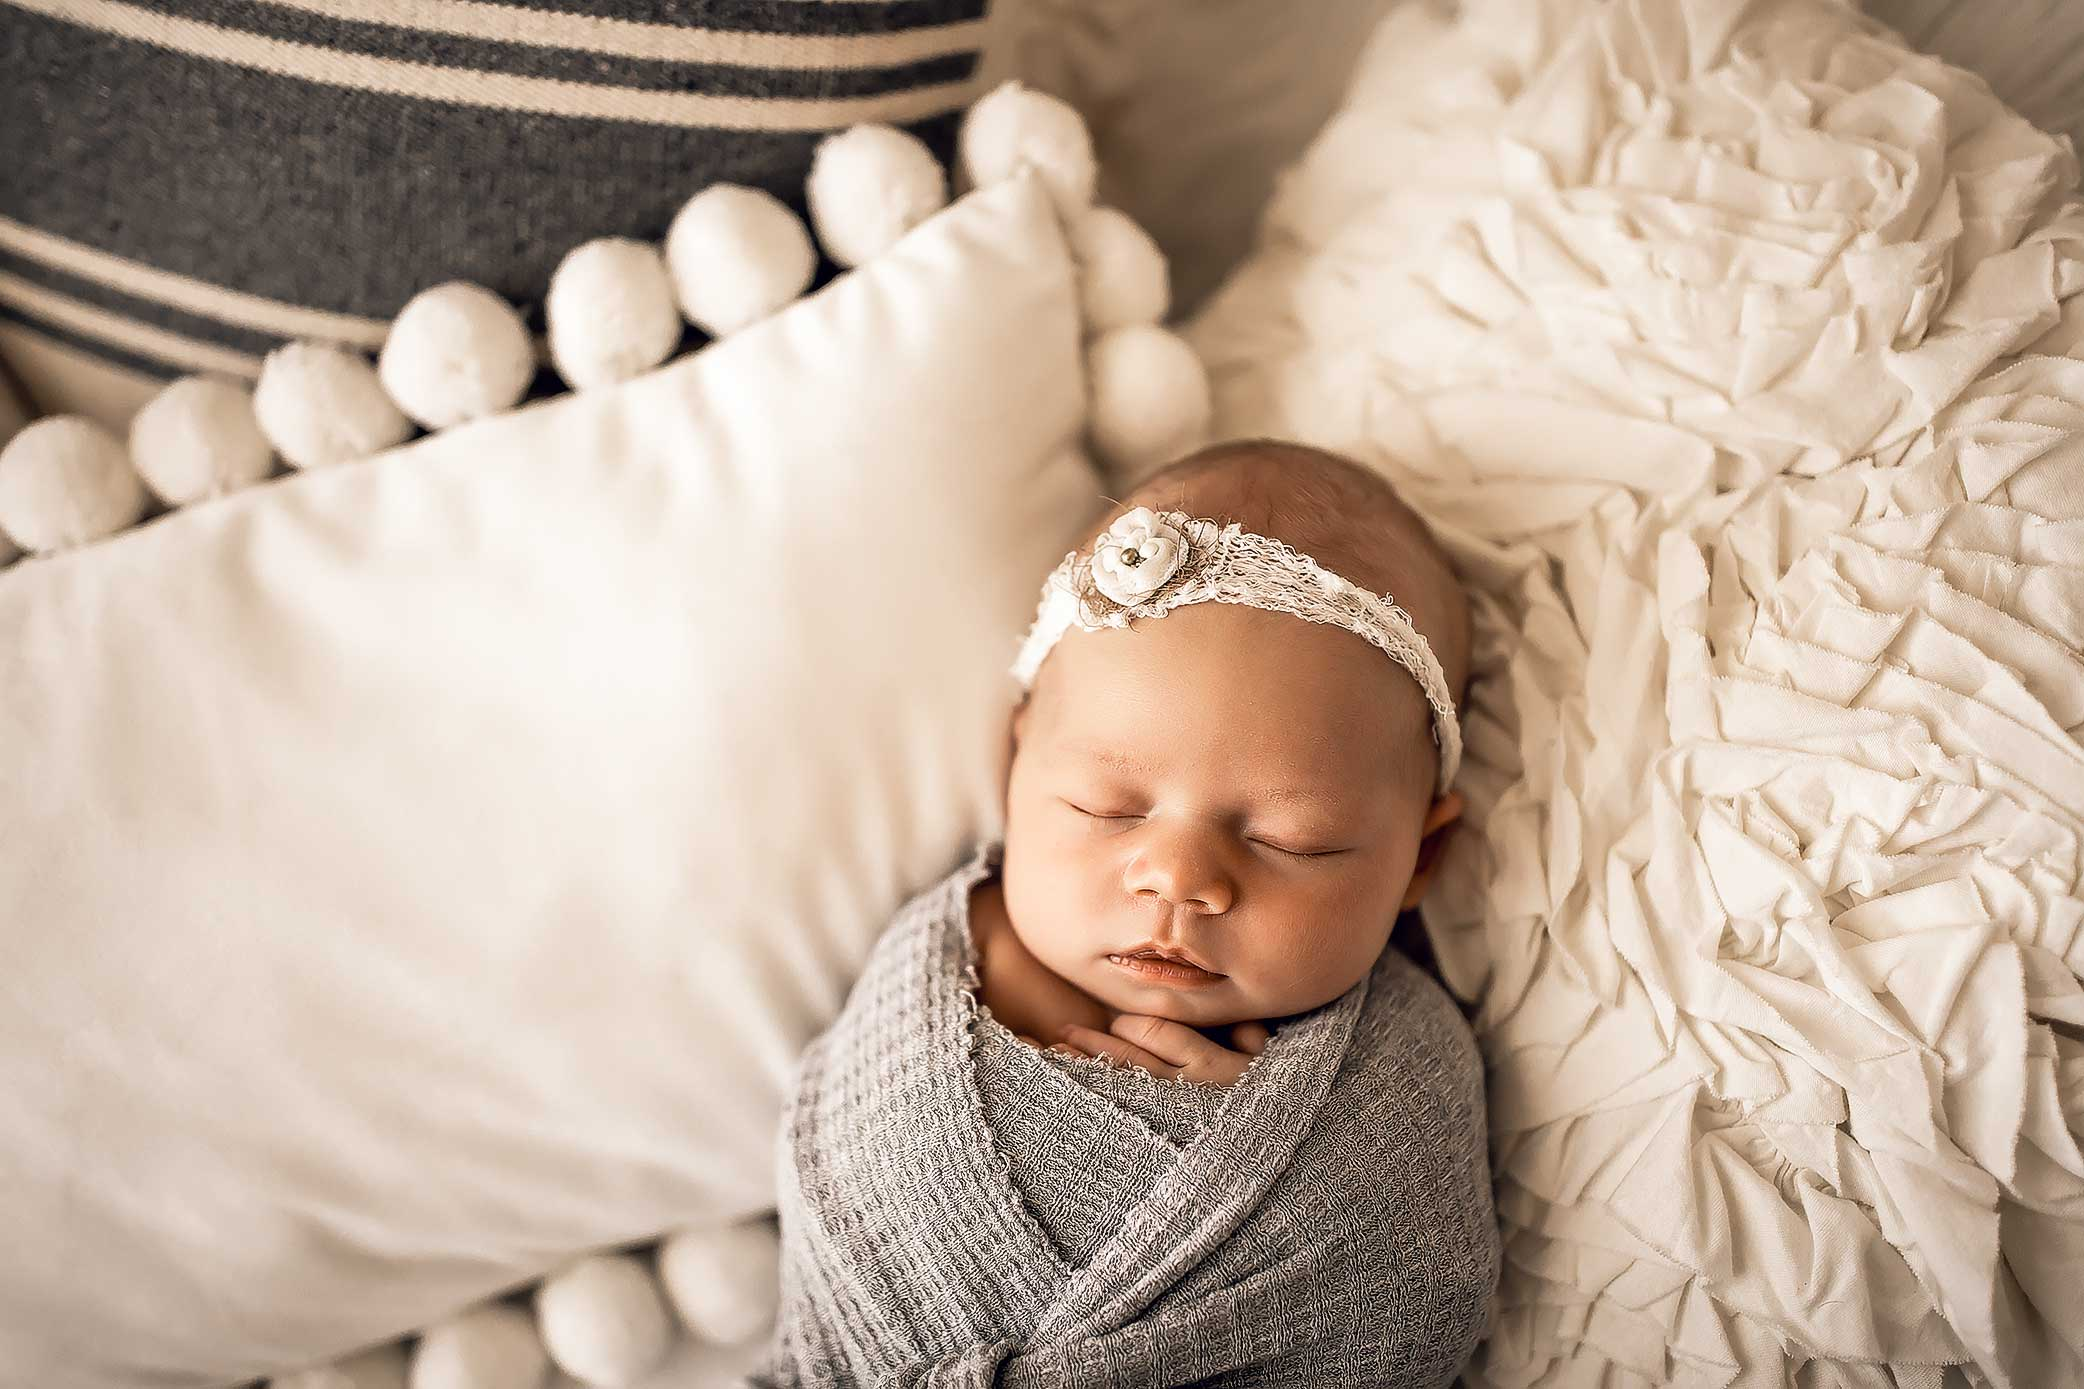 shelby-schiller-photography-studio-newborn-college-station-girl-40.jpg